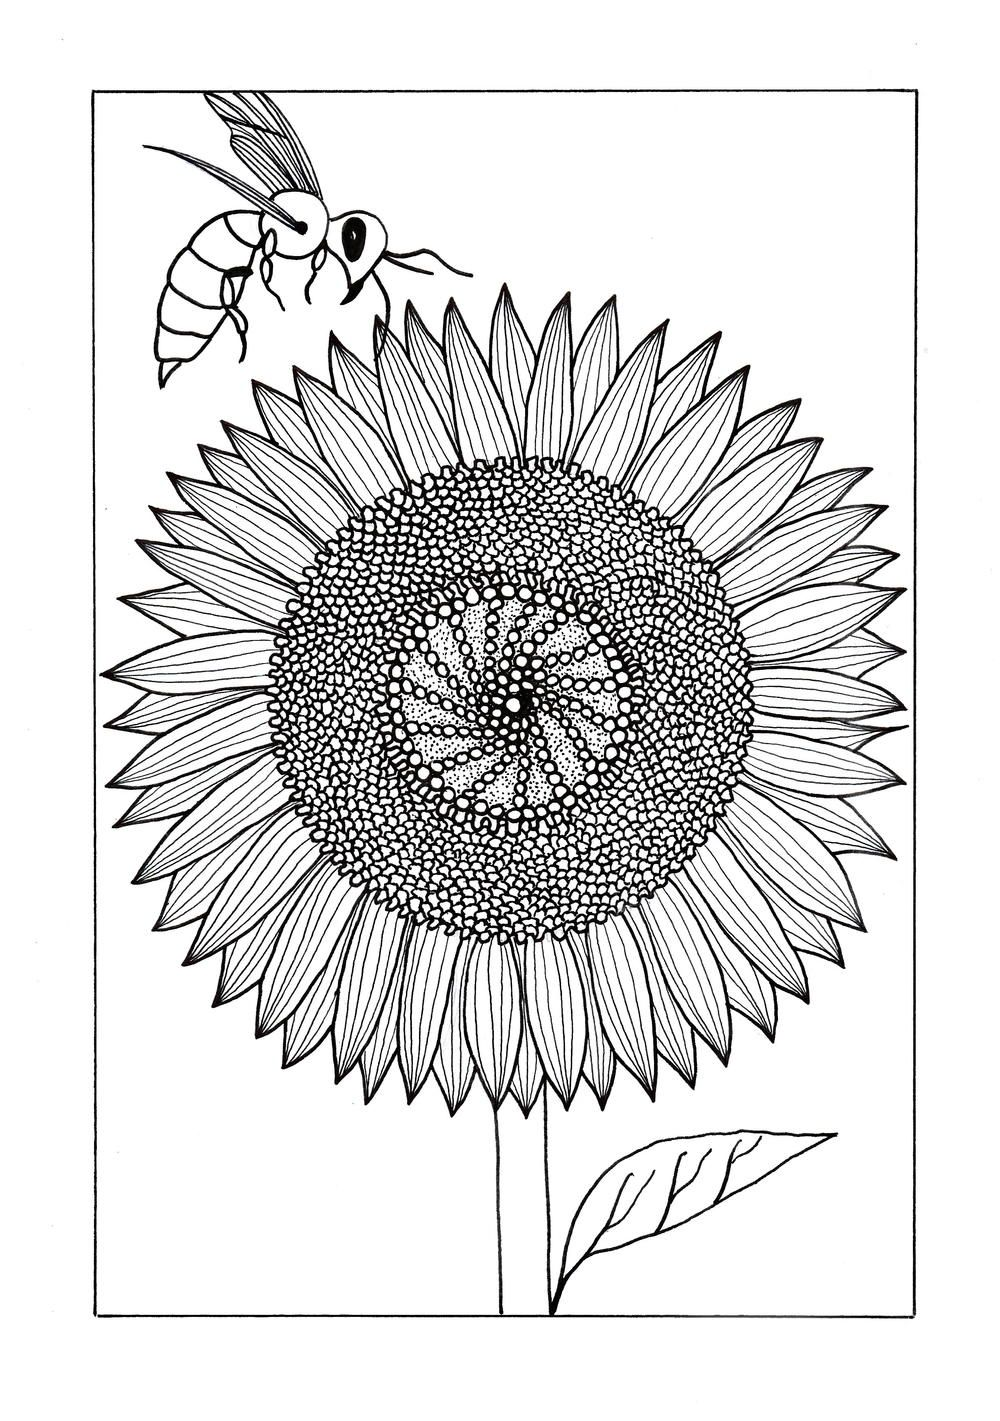 Vividly Intricate Sunflower Adult Coloring Page | Fruta y Flores